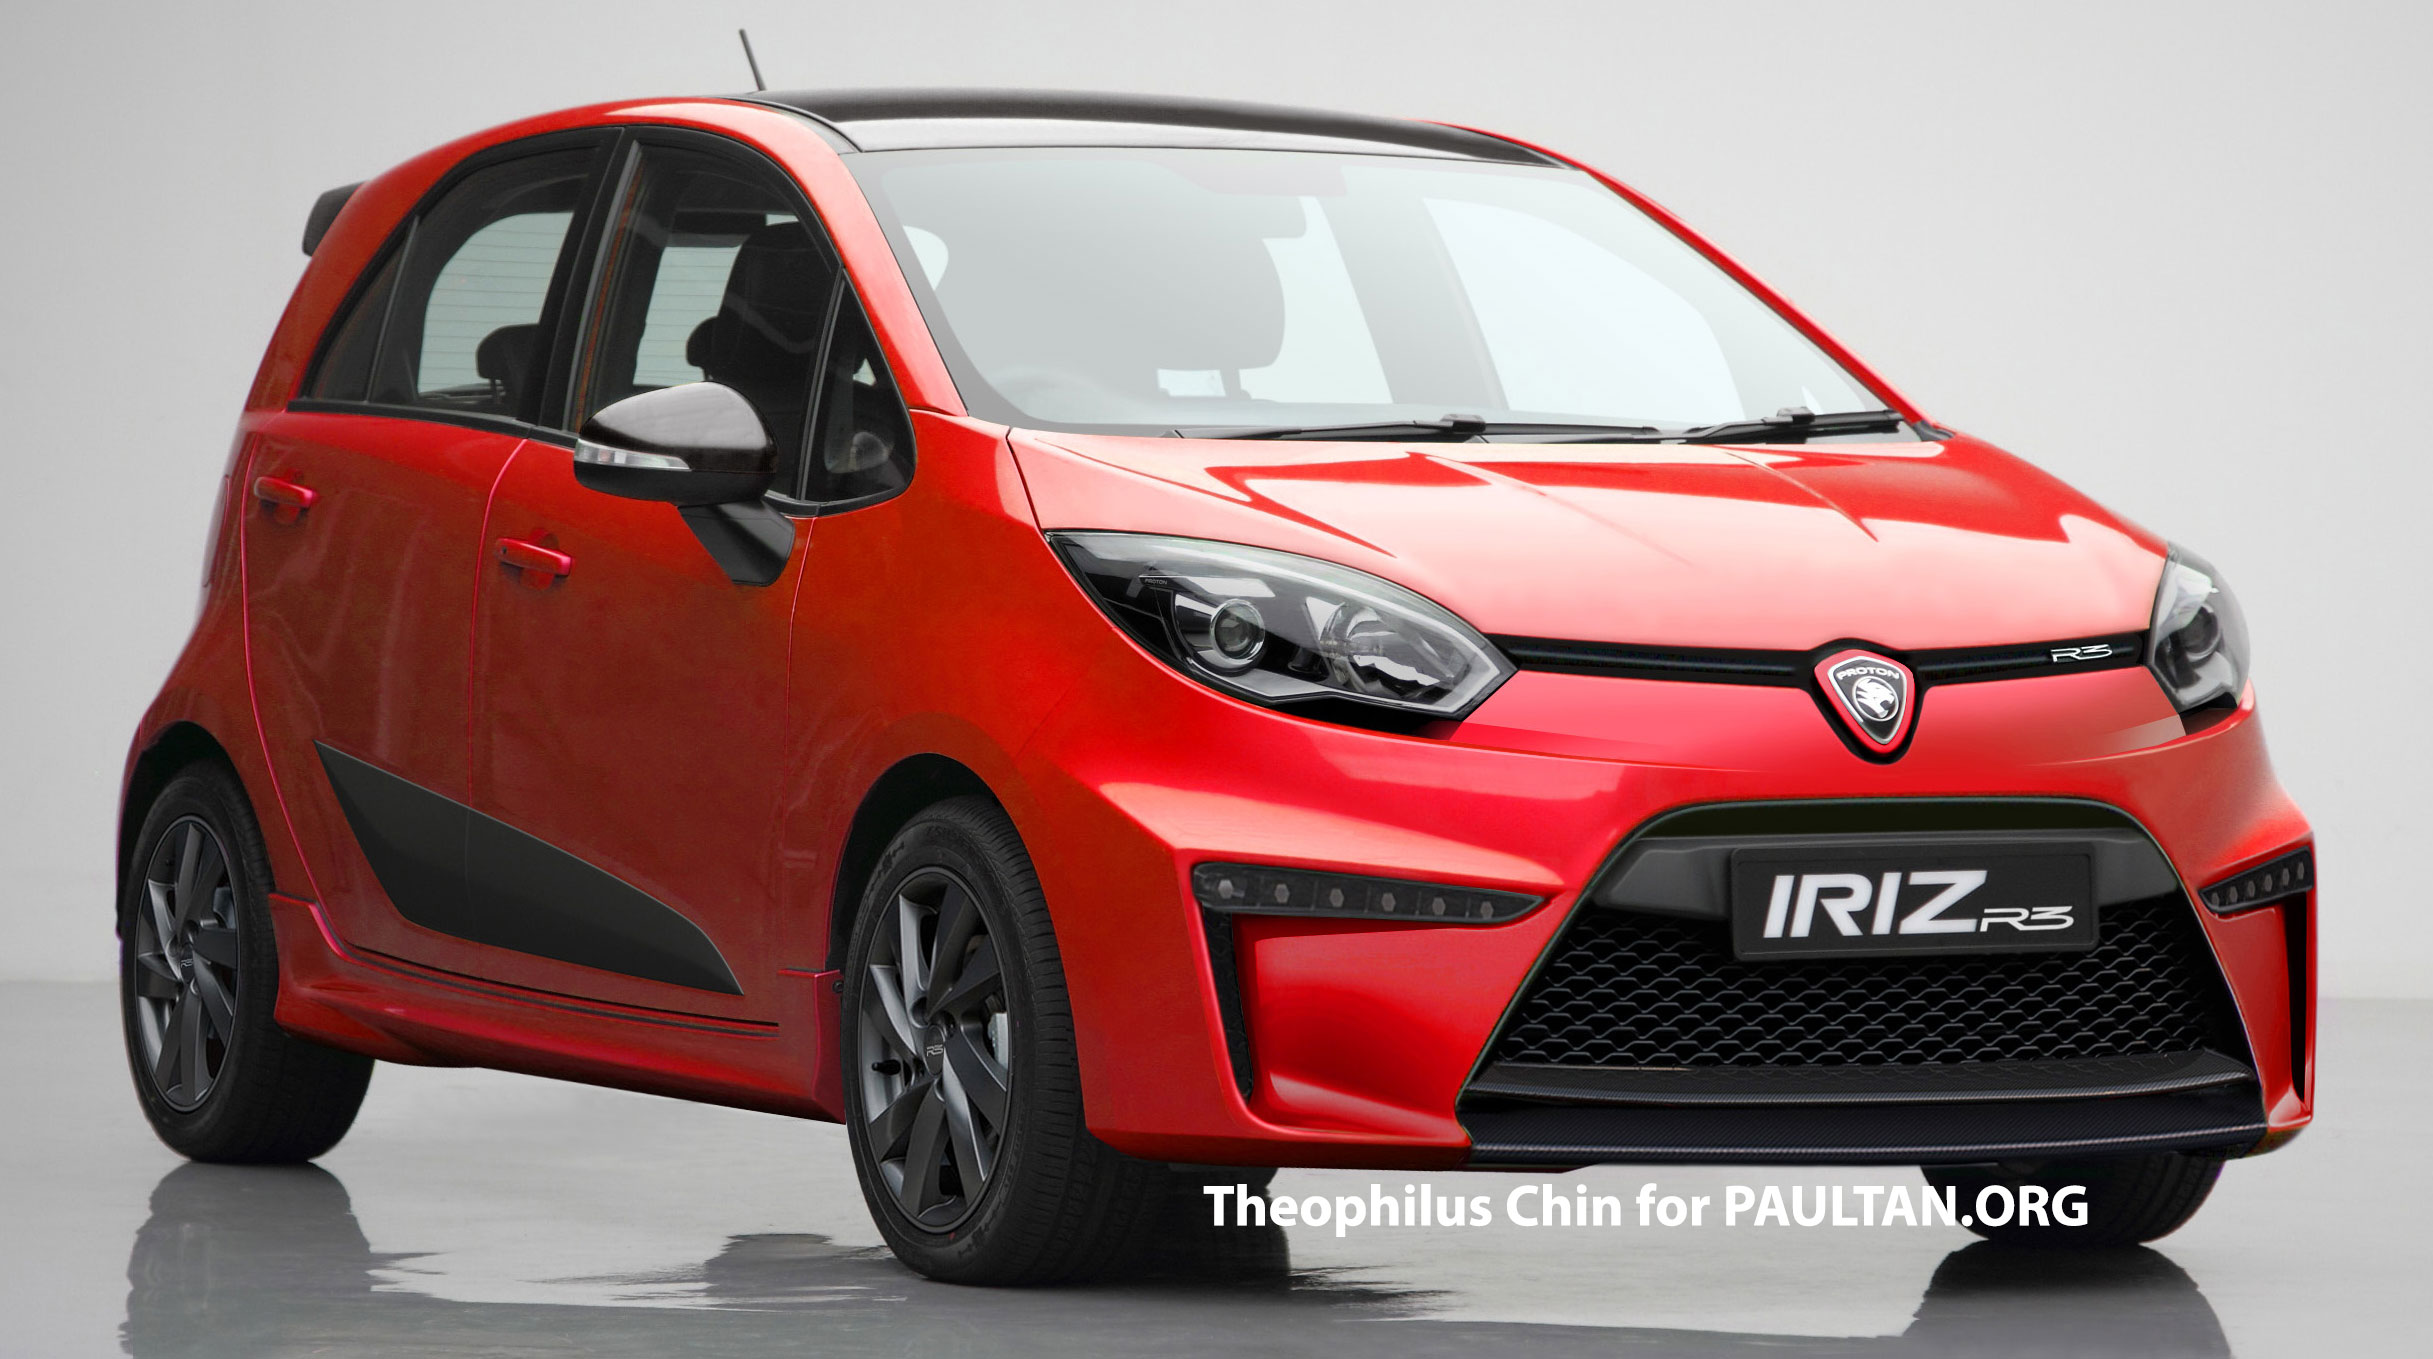 Rendered Proton Iriz R3 Hot Hatch For The Future